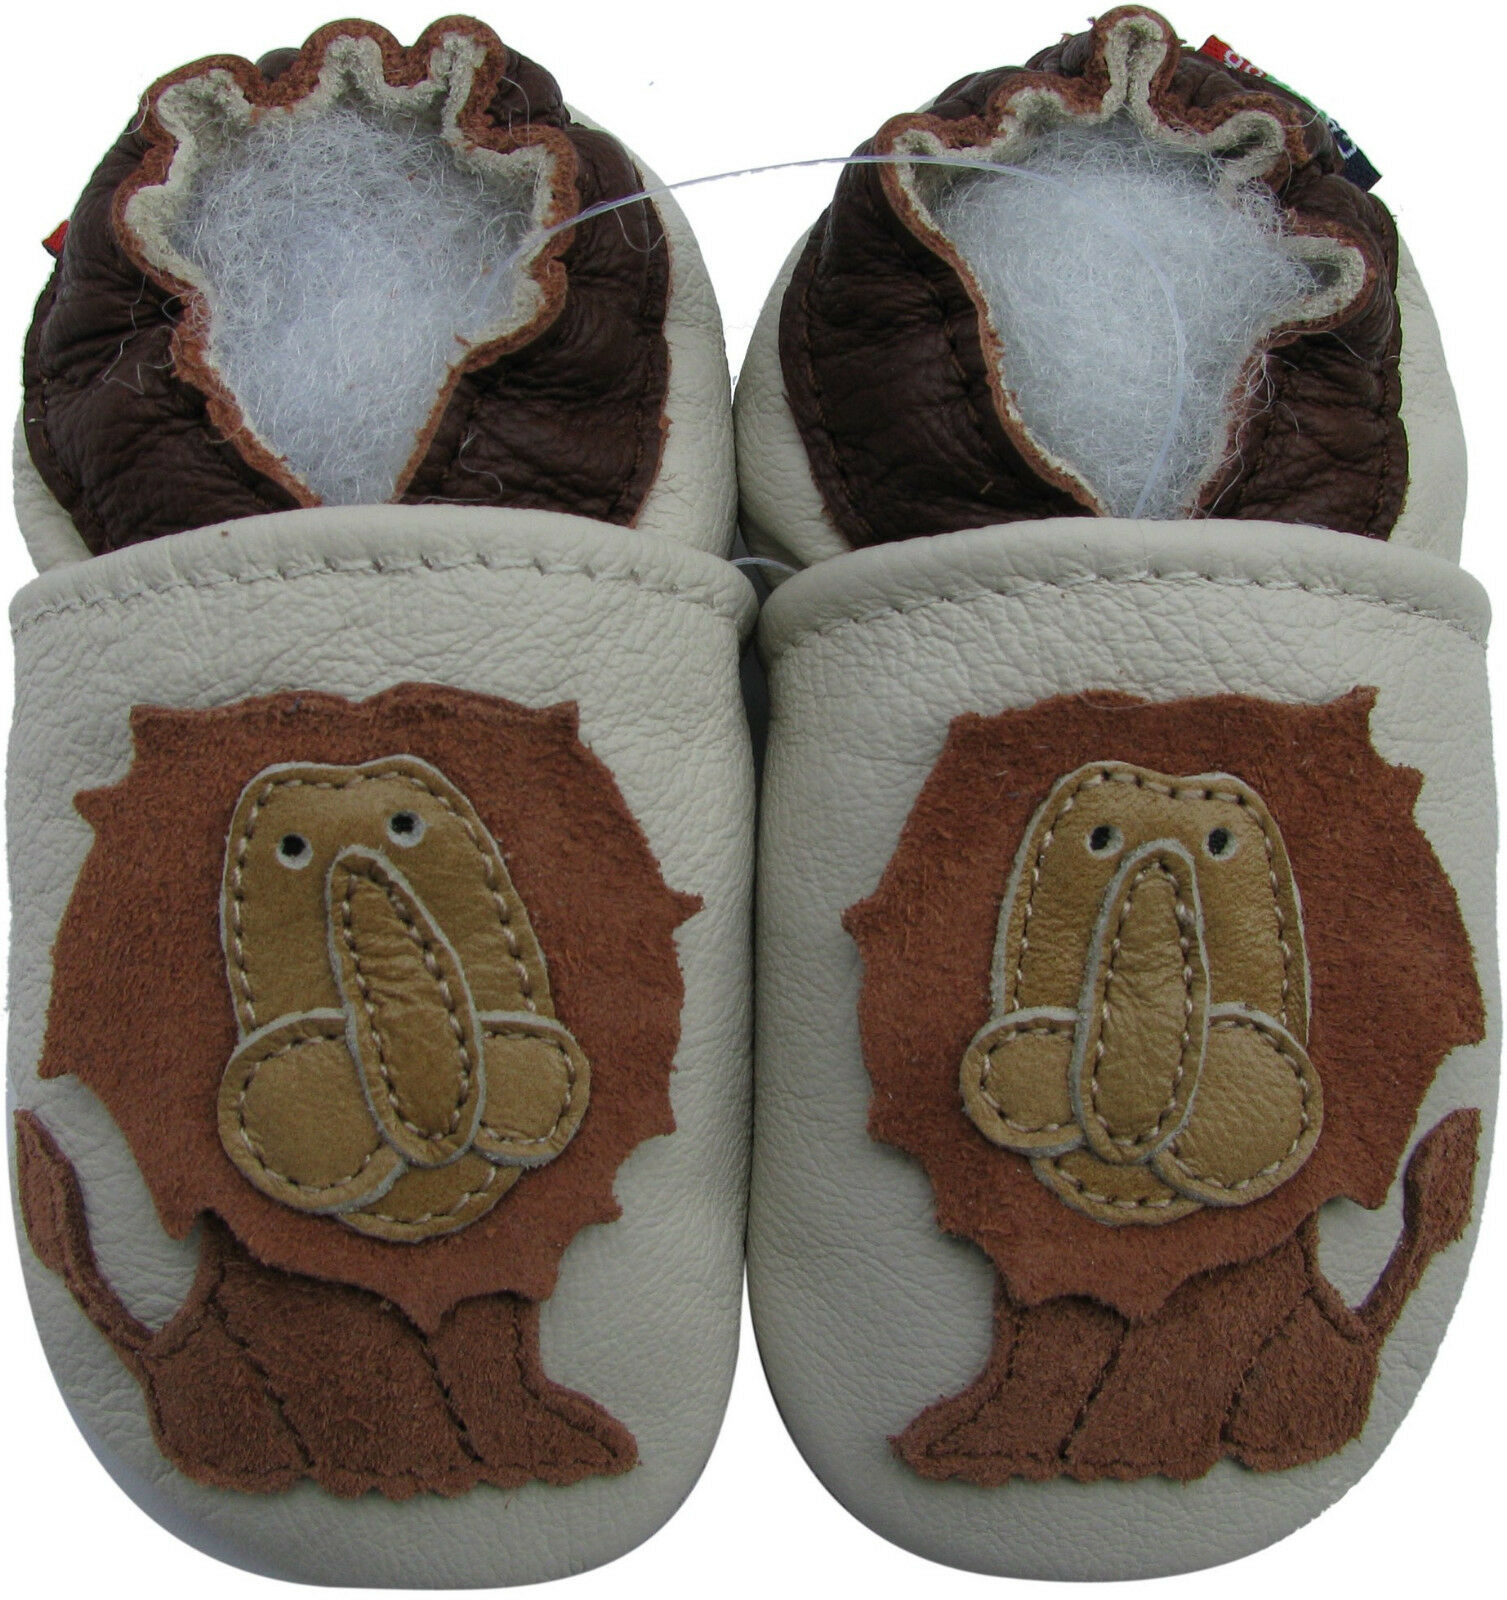 Carozoo Lion King 6 12m Soft Sole Leather Baby Shoes